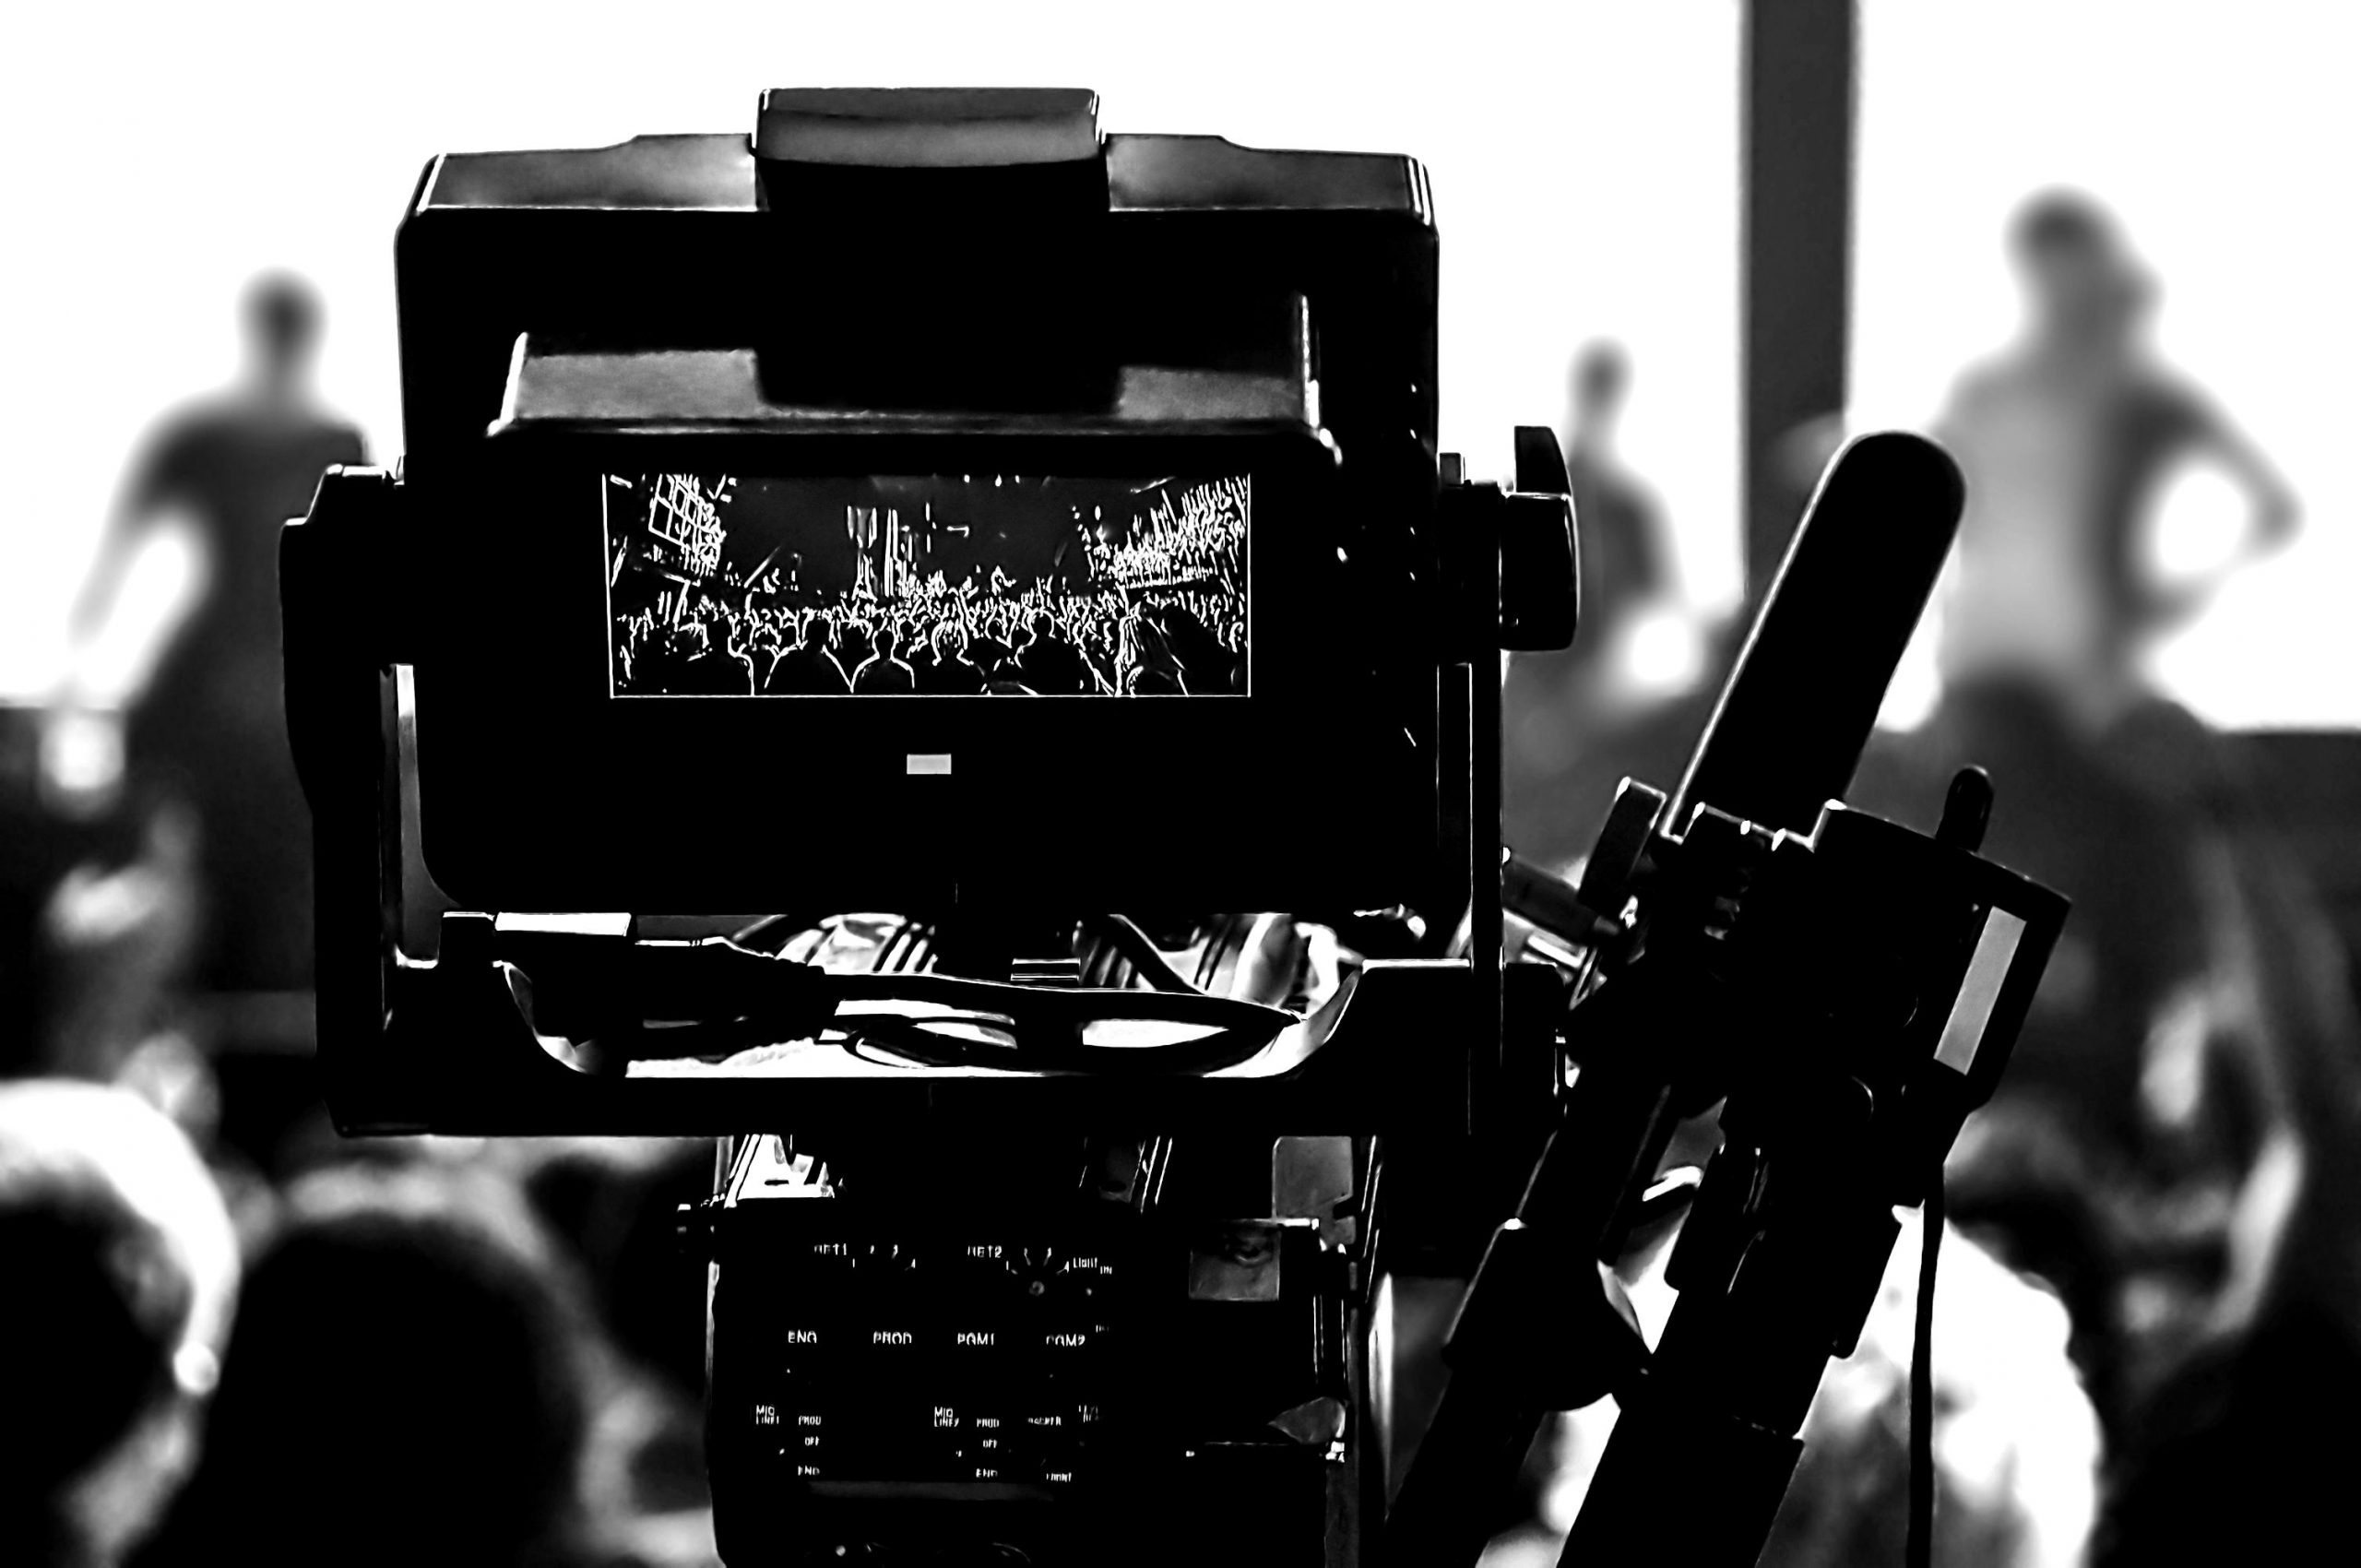 Captation vidéo shooting concert professional camera view of the PTN8AQM blackwhite scaled